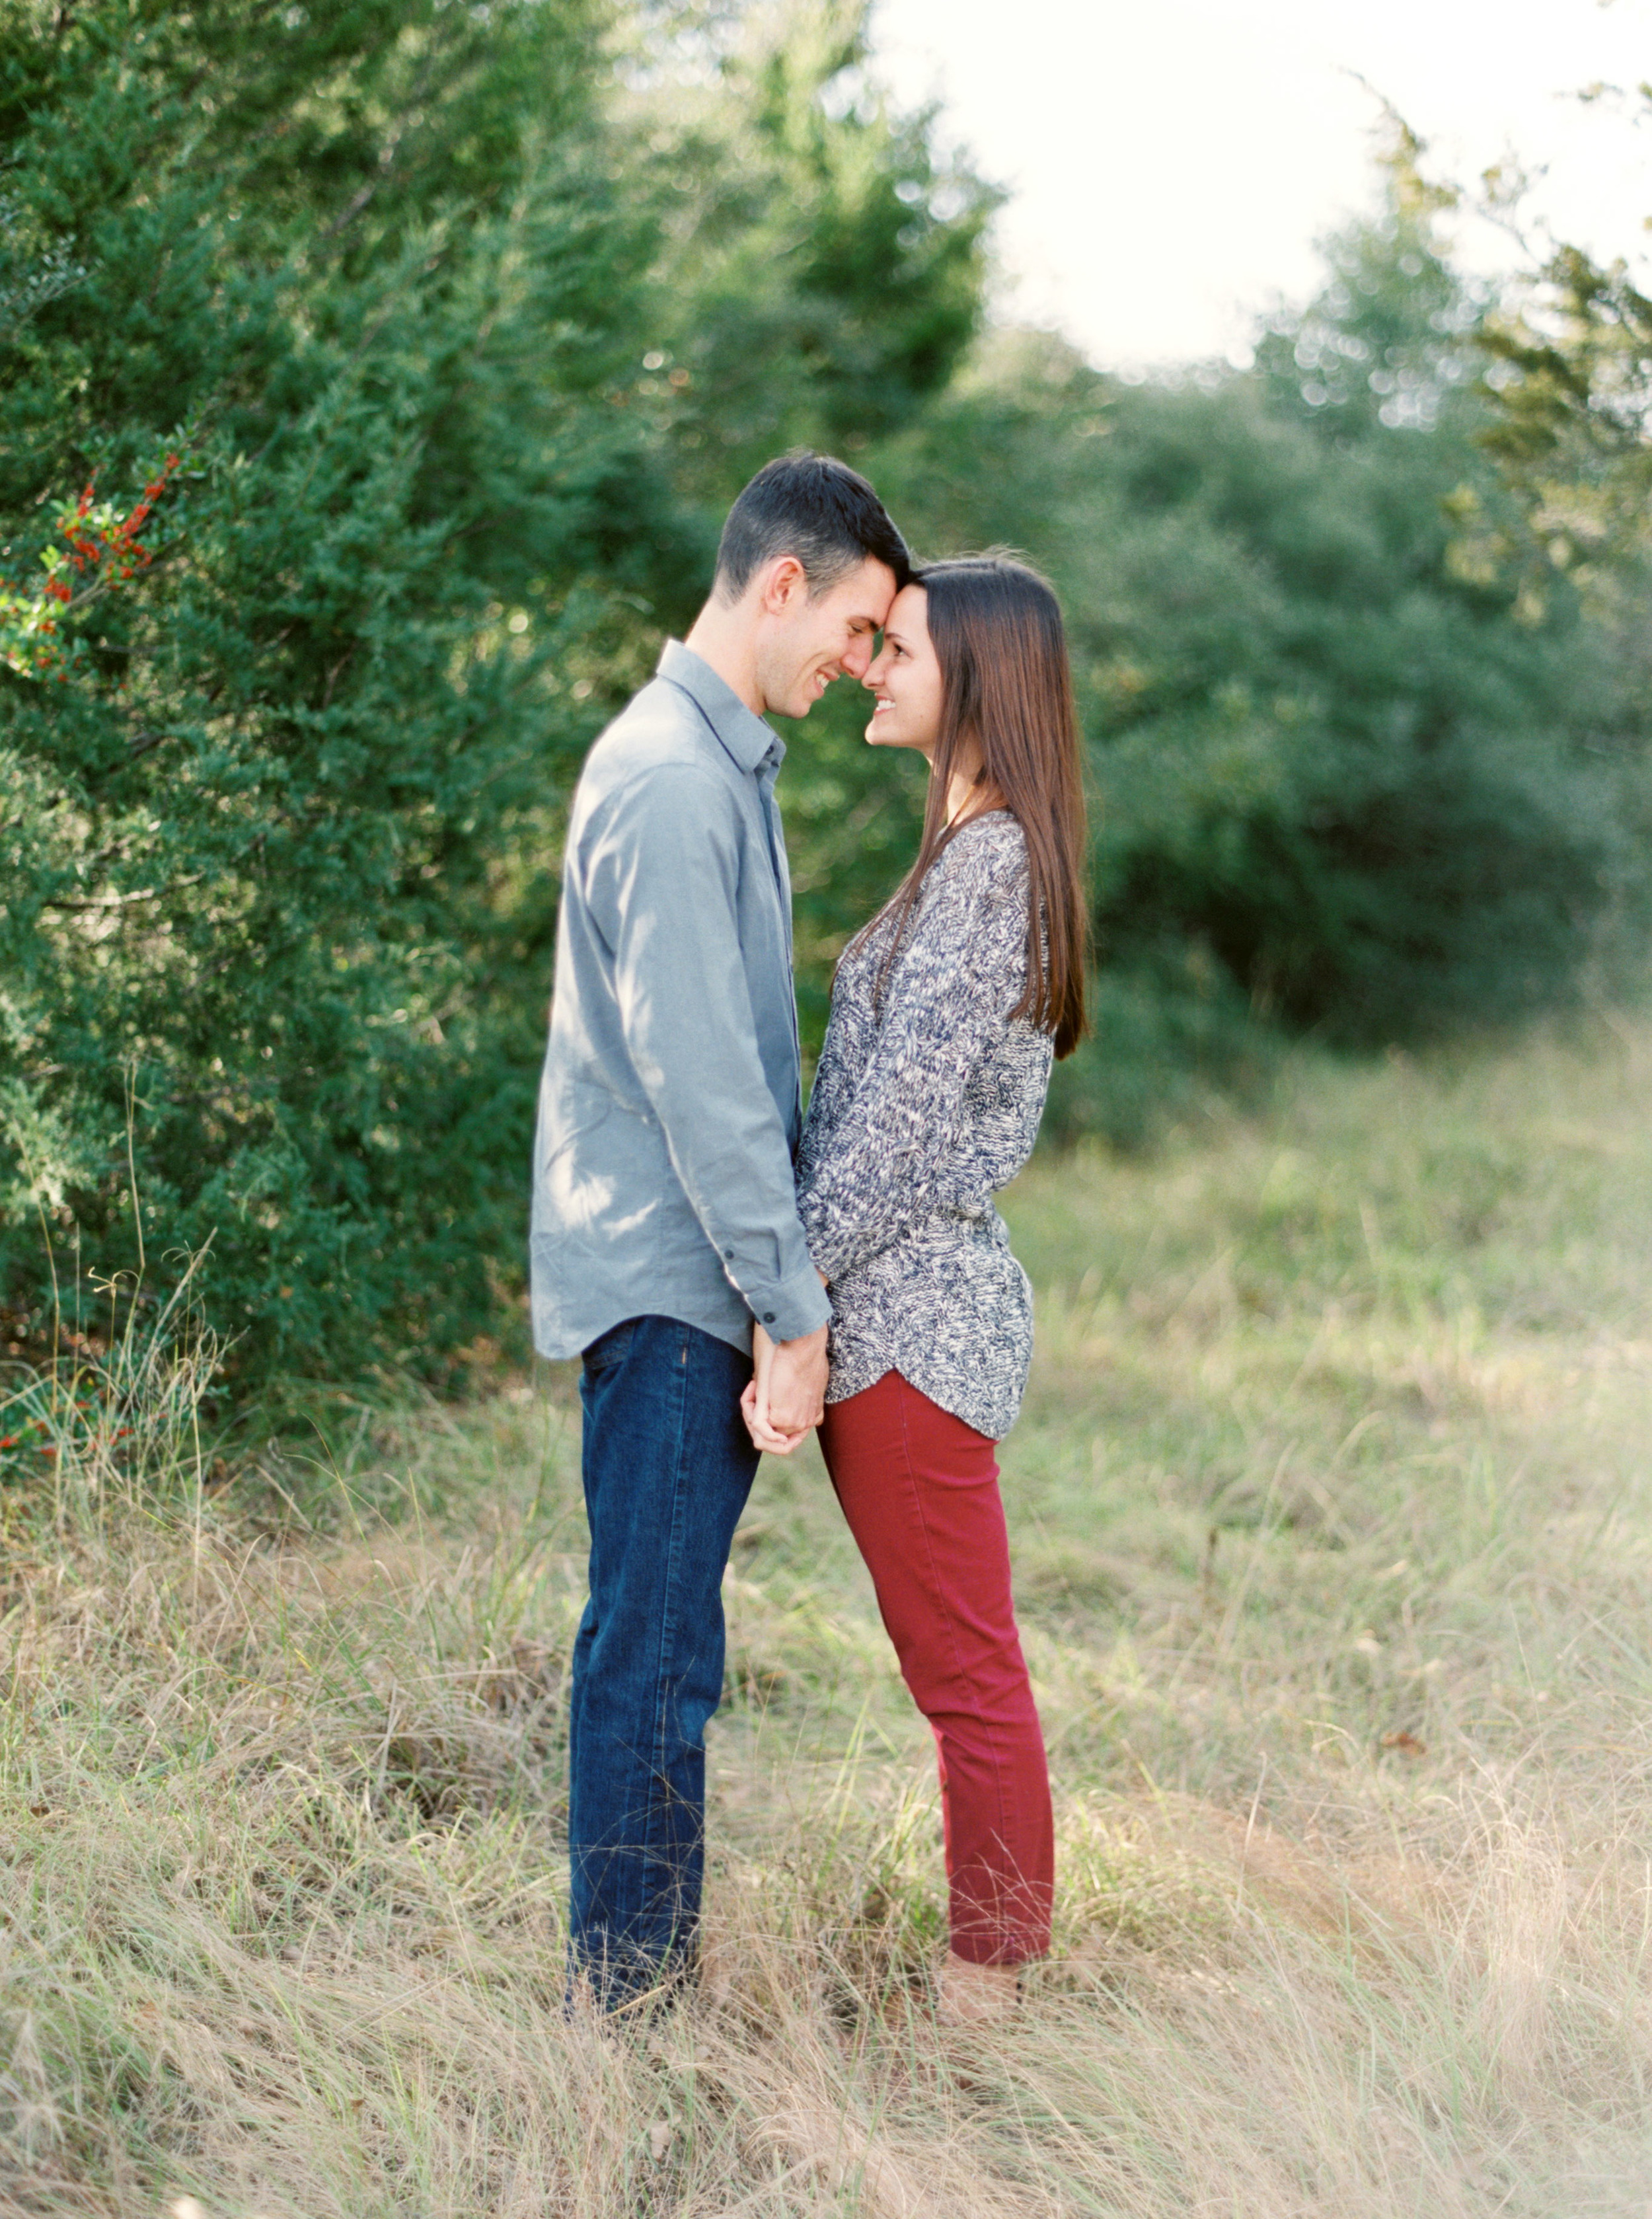 Sarah Best Photography - Brittany & Jonathan's Engagements-196.jpg